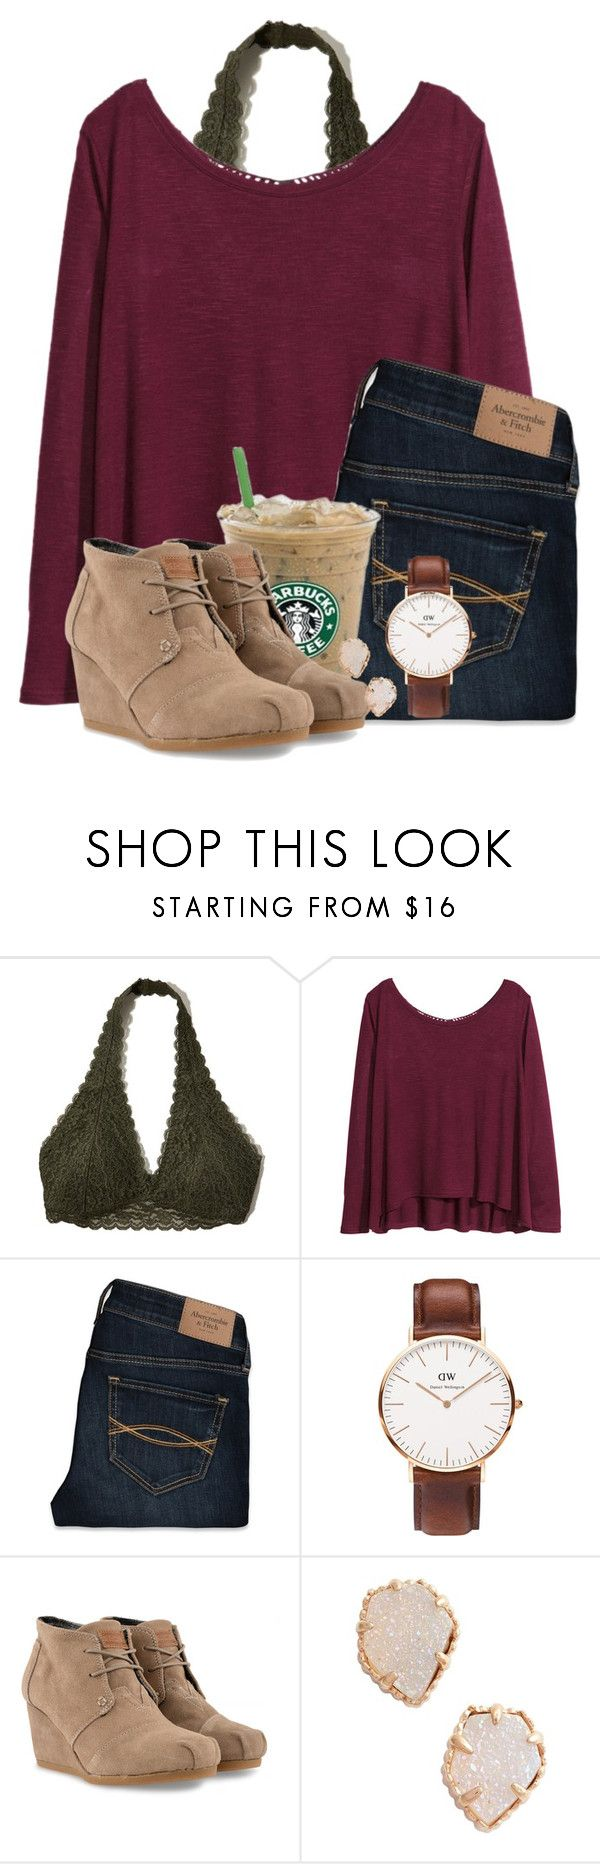 """"""""""" by alliquick ❤ liked on Polyvore featuring Hollister Co., H&M, Abercrombie & Fitch, Daniel Wellington, TOMS and Kendra Scott"""